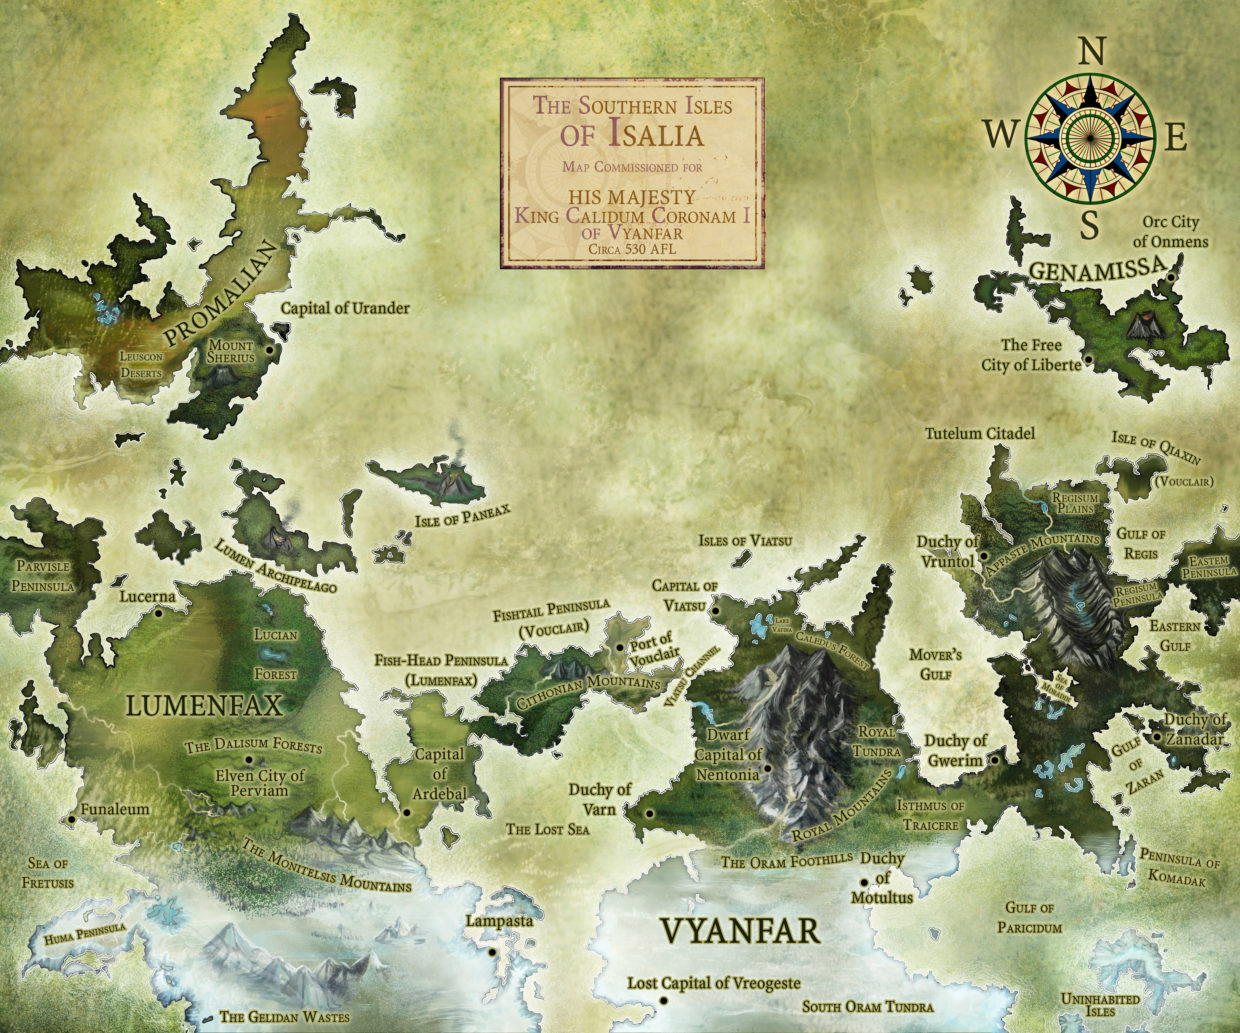 Realistic color fantasy map island archipelago peninsula tundra mountains roleplaying game political map